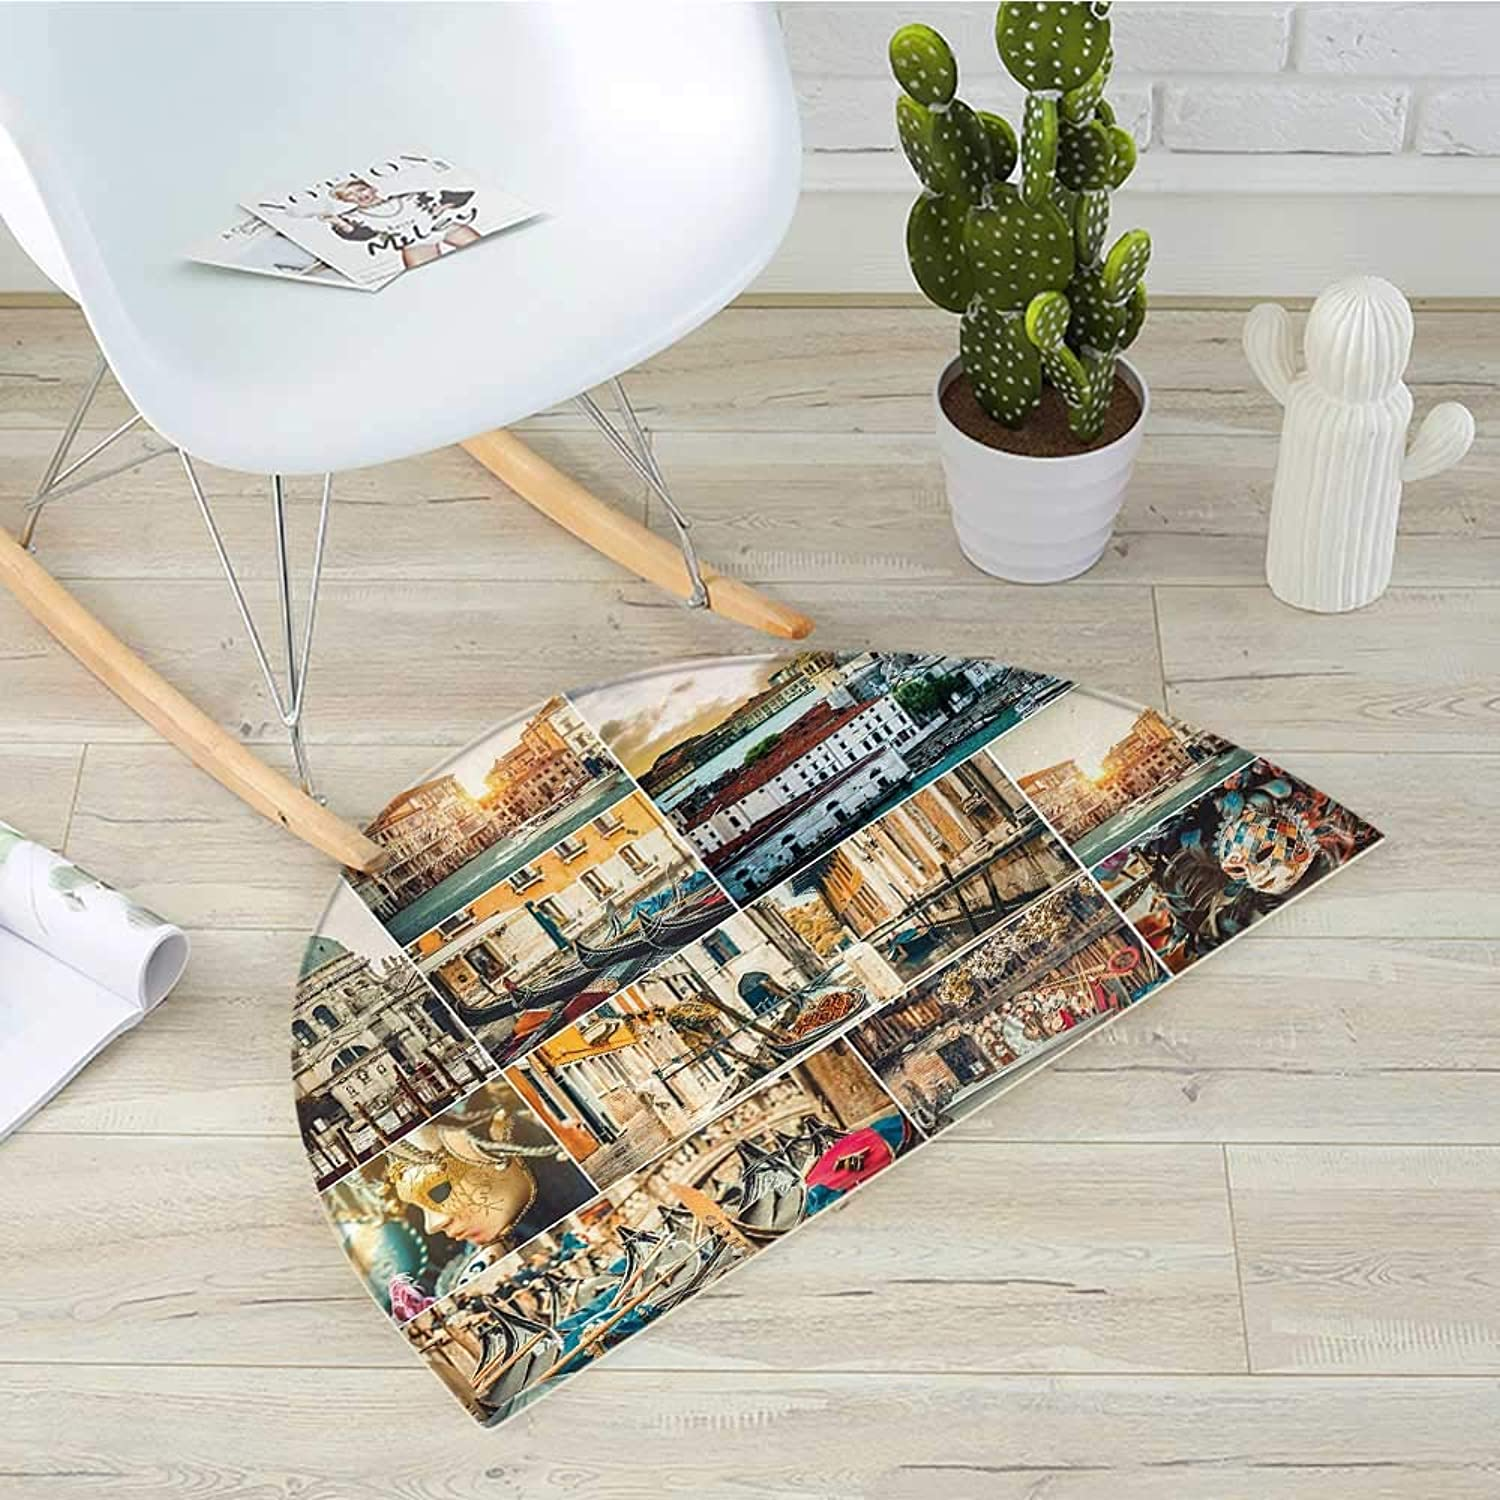 Travel Semicircle Doormat Collage of Various Views of Venice City with Canal Cathedral Palace Travel Theme Halfmoon doormats H 43.3  xD 64.9  Multicolor